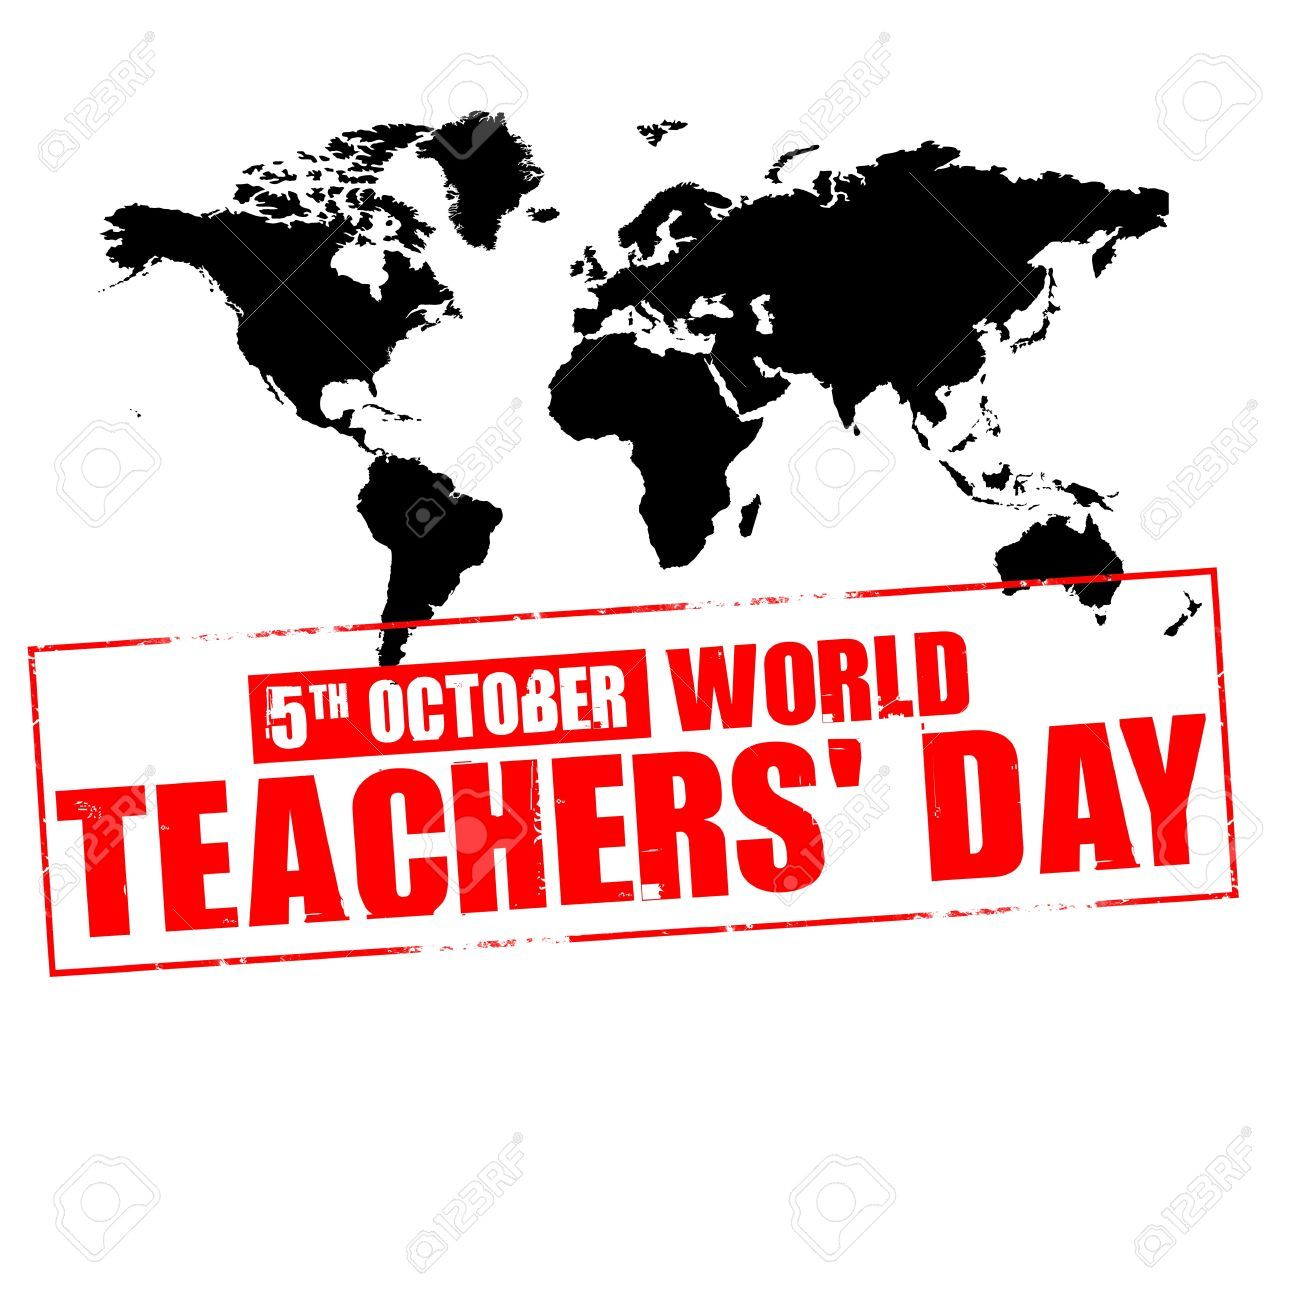 7-World Teachers Day Wishes